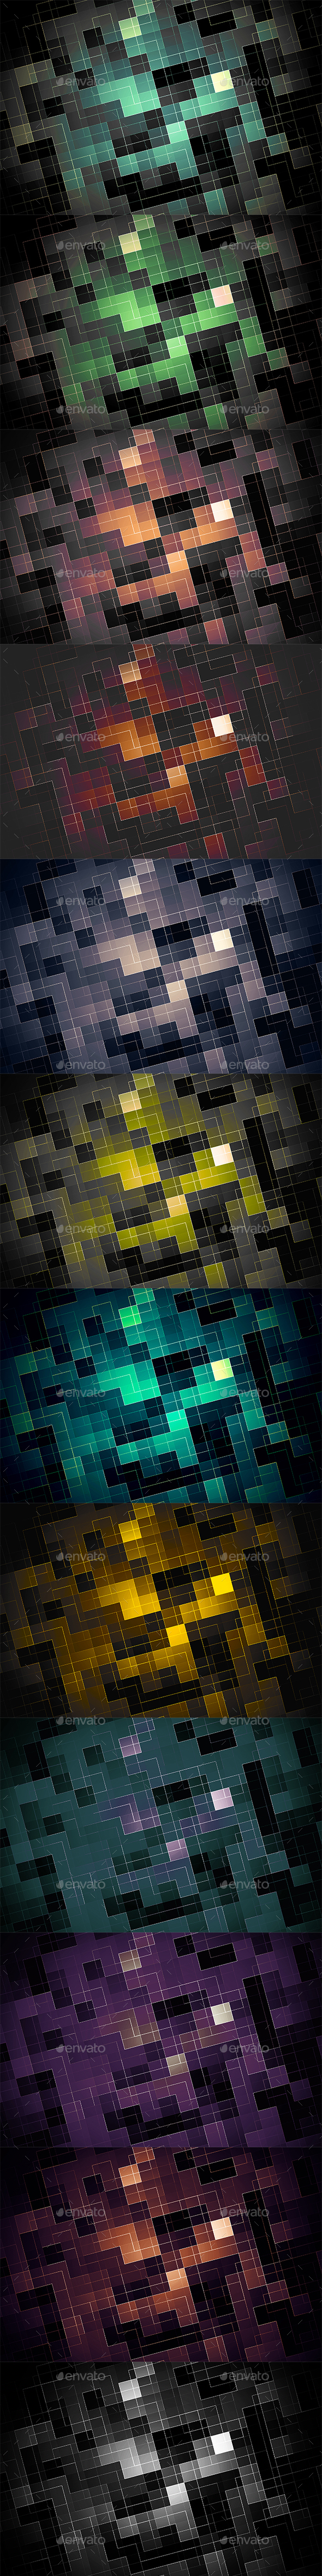 Digital Pixel Backgrounds - Patterns Backgrounds